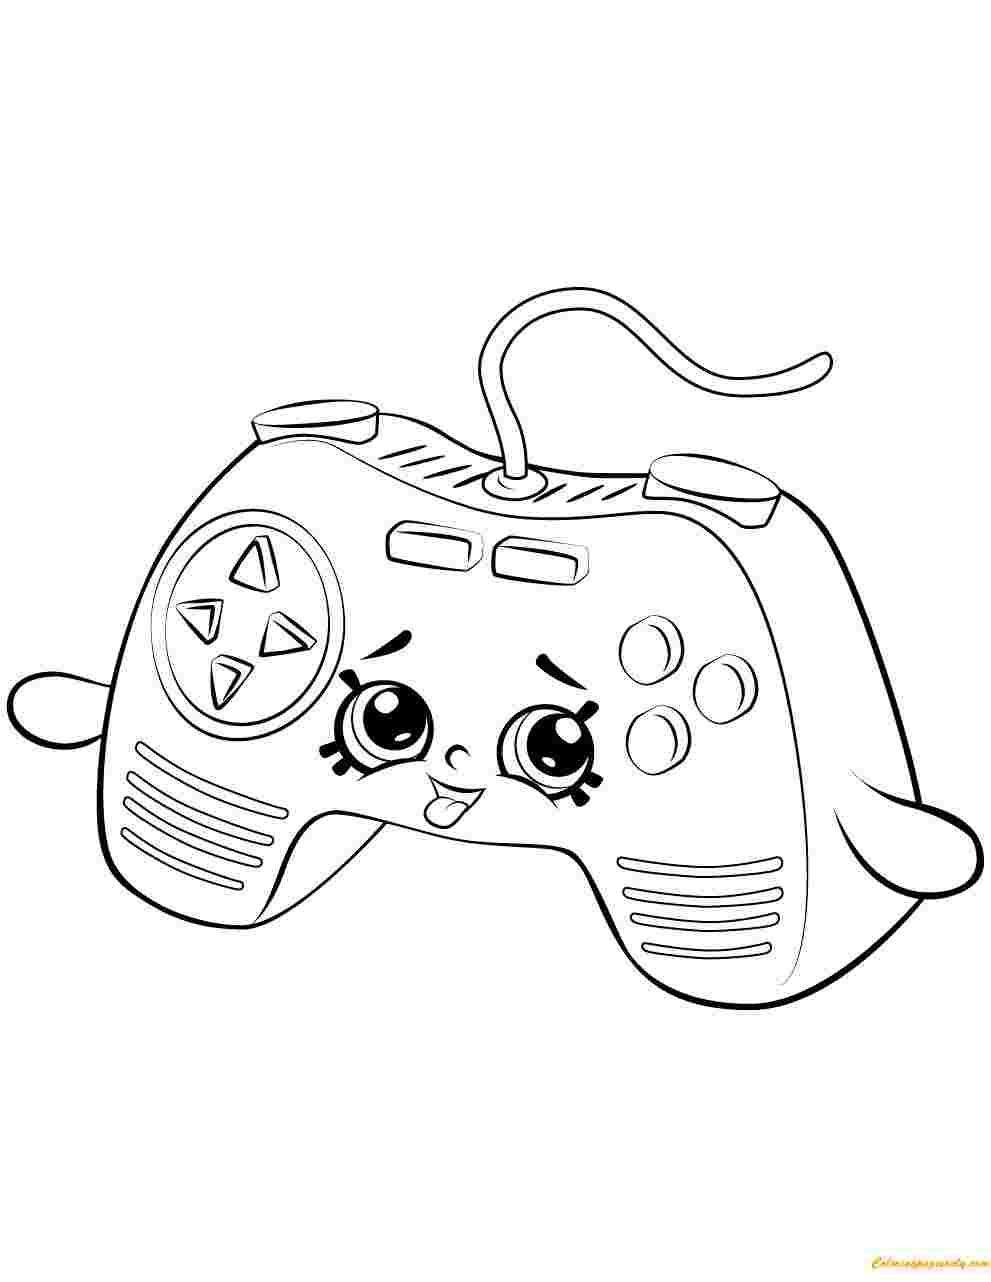 18 Coloring Page Xbox Shopkins Colouring Pages Cute Coloring Pages Shopkin Coloring Pages